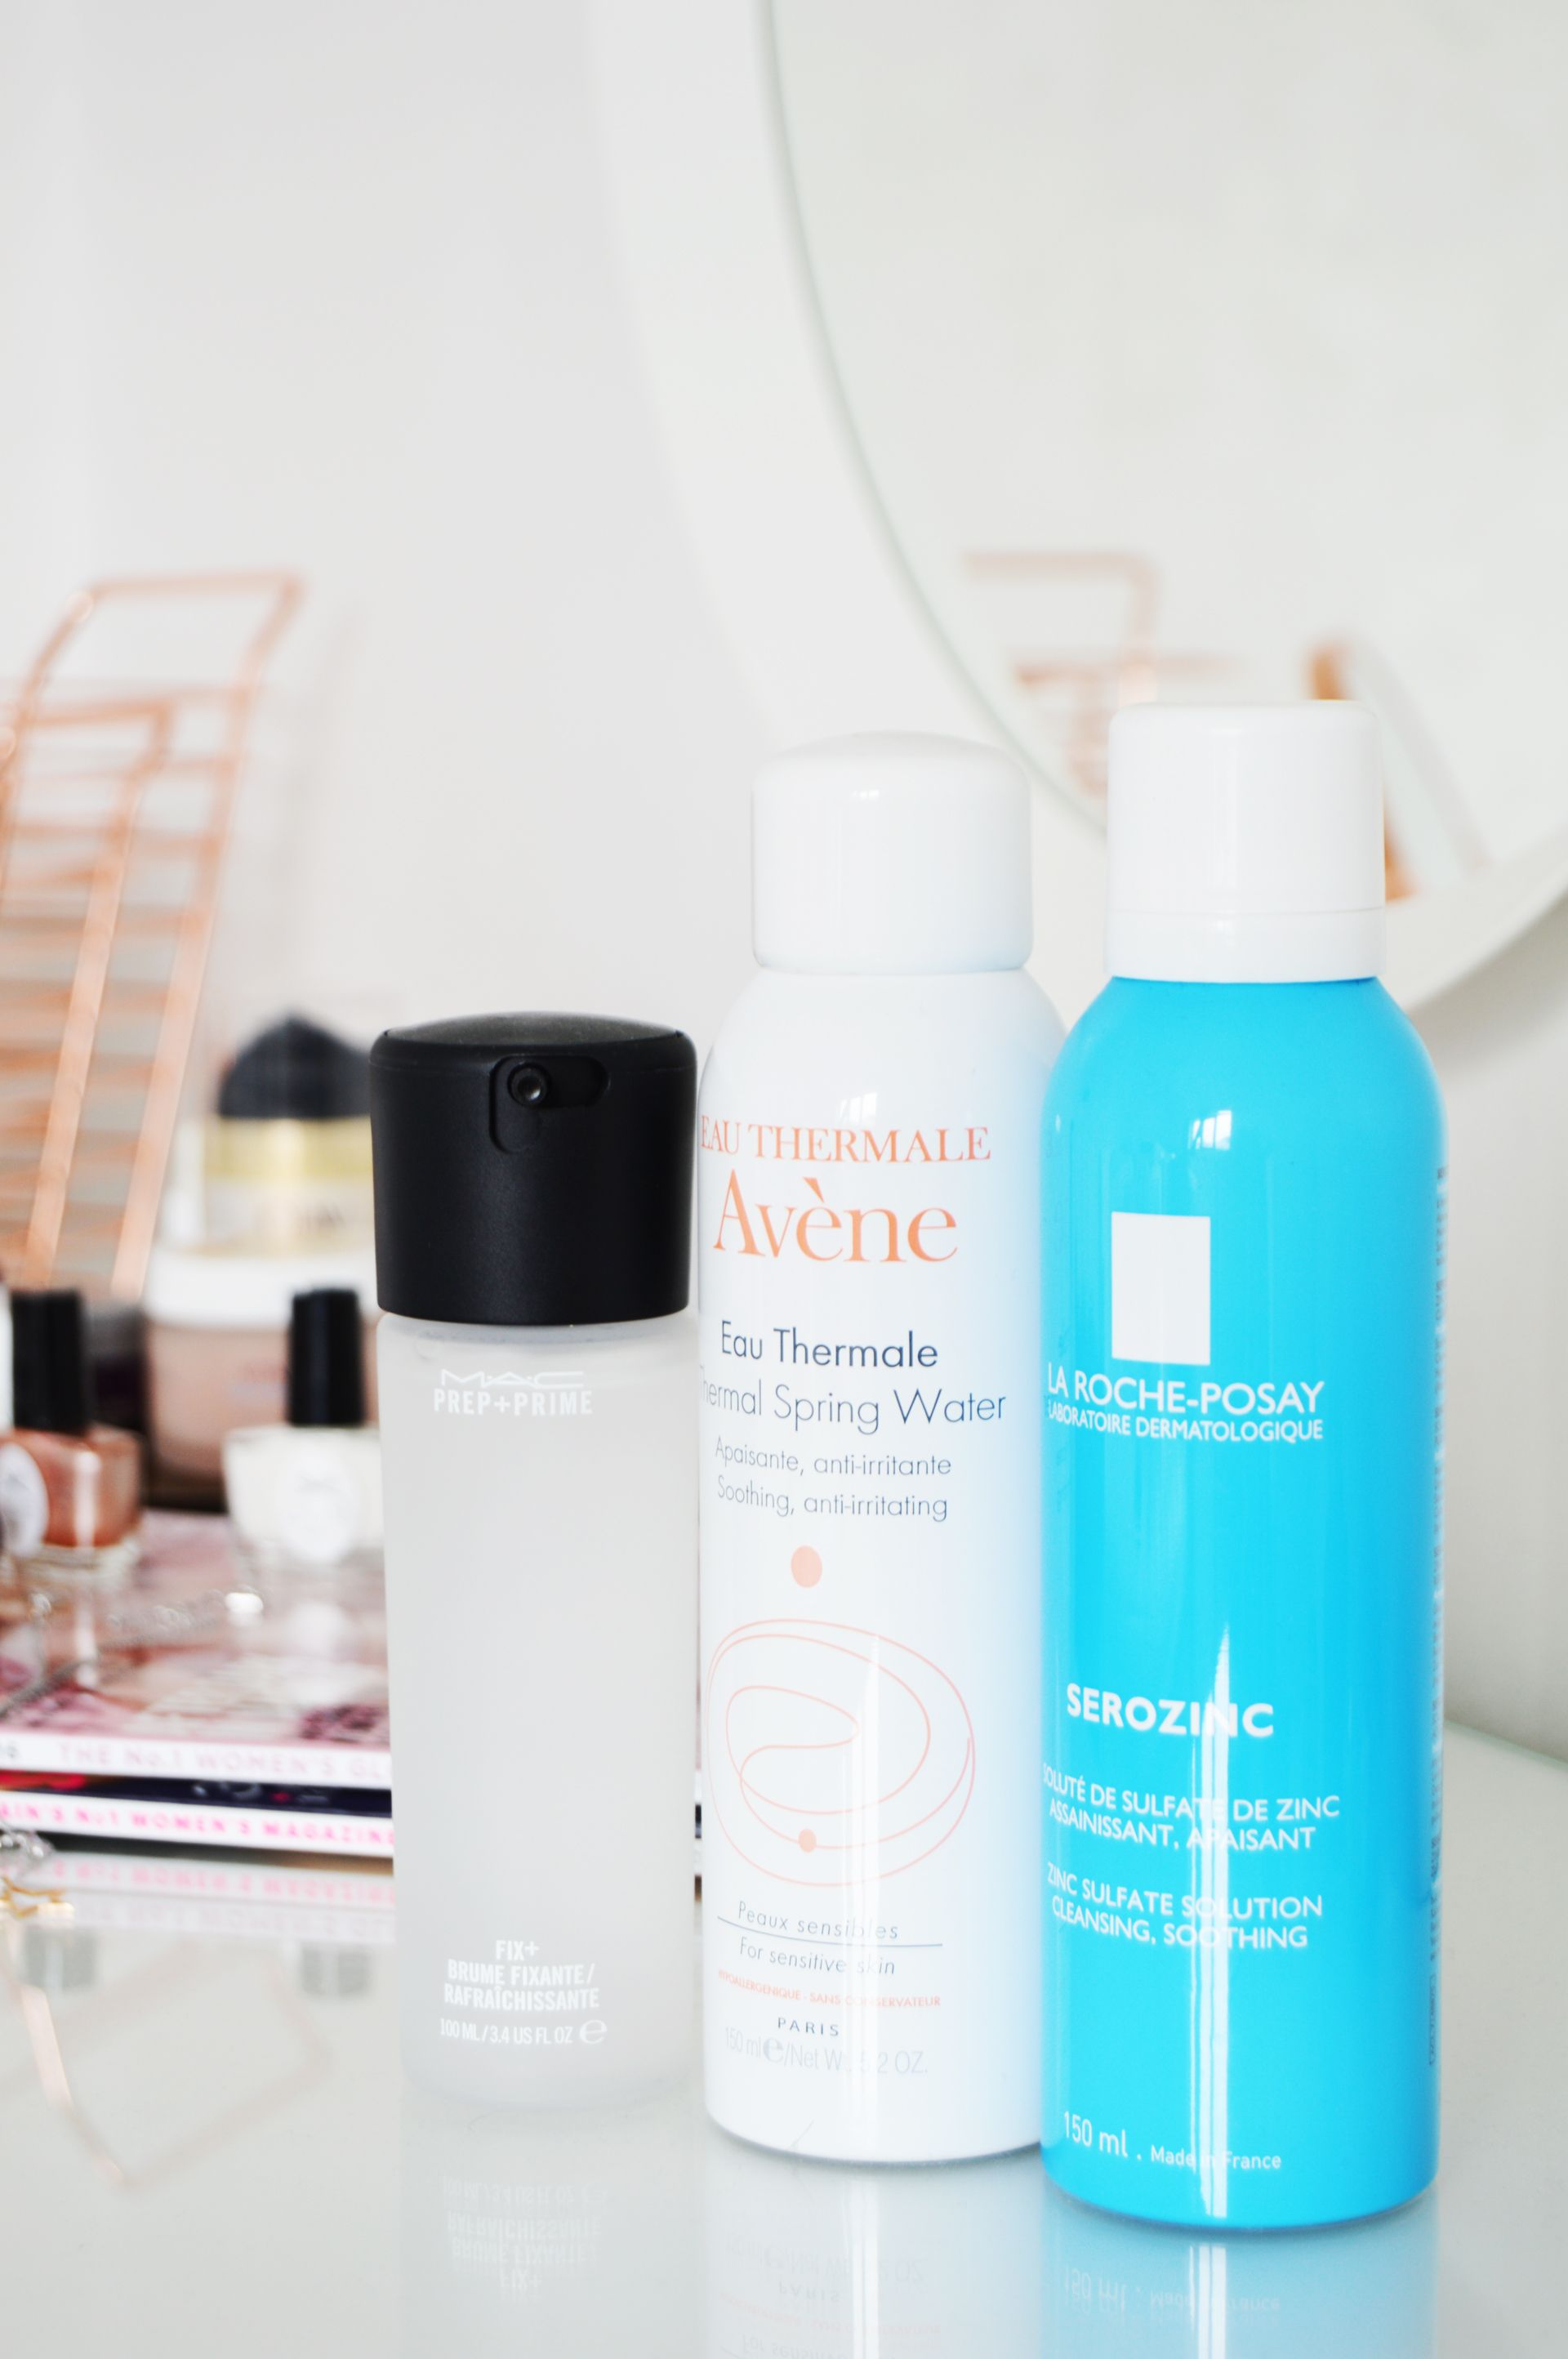 Face mists are fuss free skincare products, all you need is a few sprays then you're ready to go. There are many face mists to try out, all you need to know is what your skin needs then you can find which suits you the most.